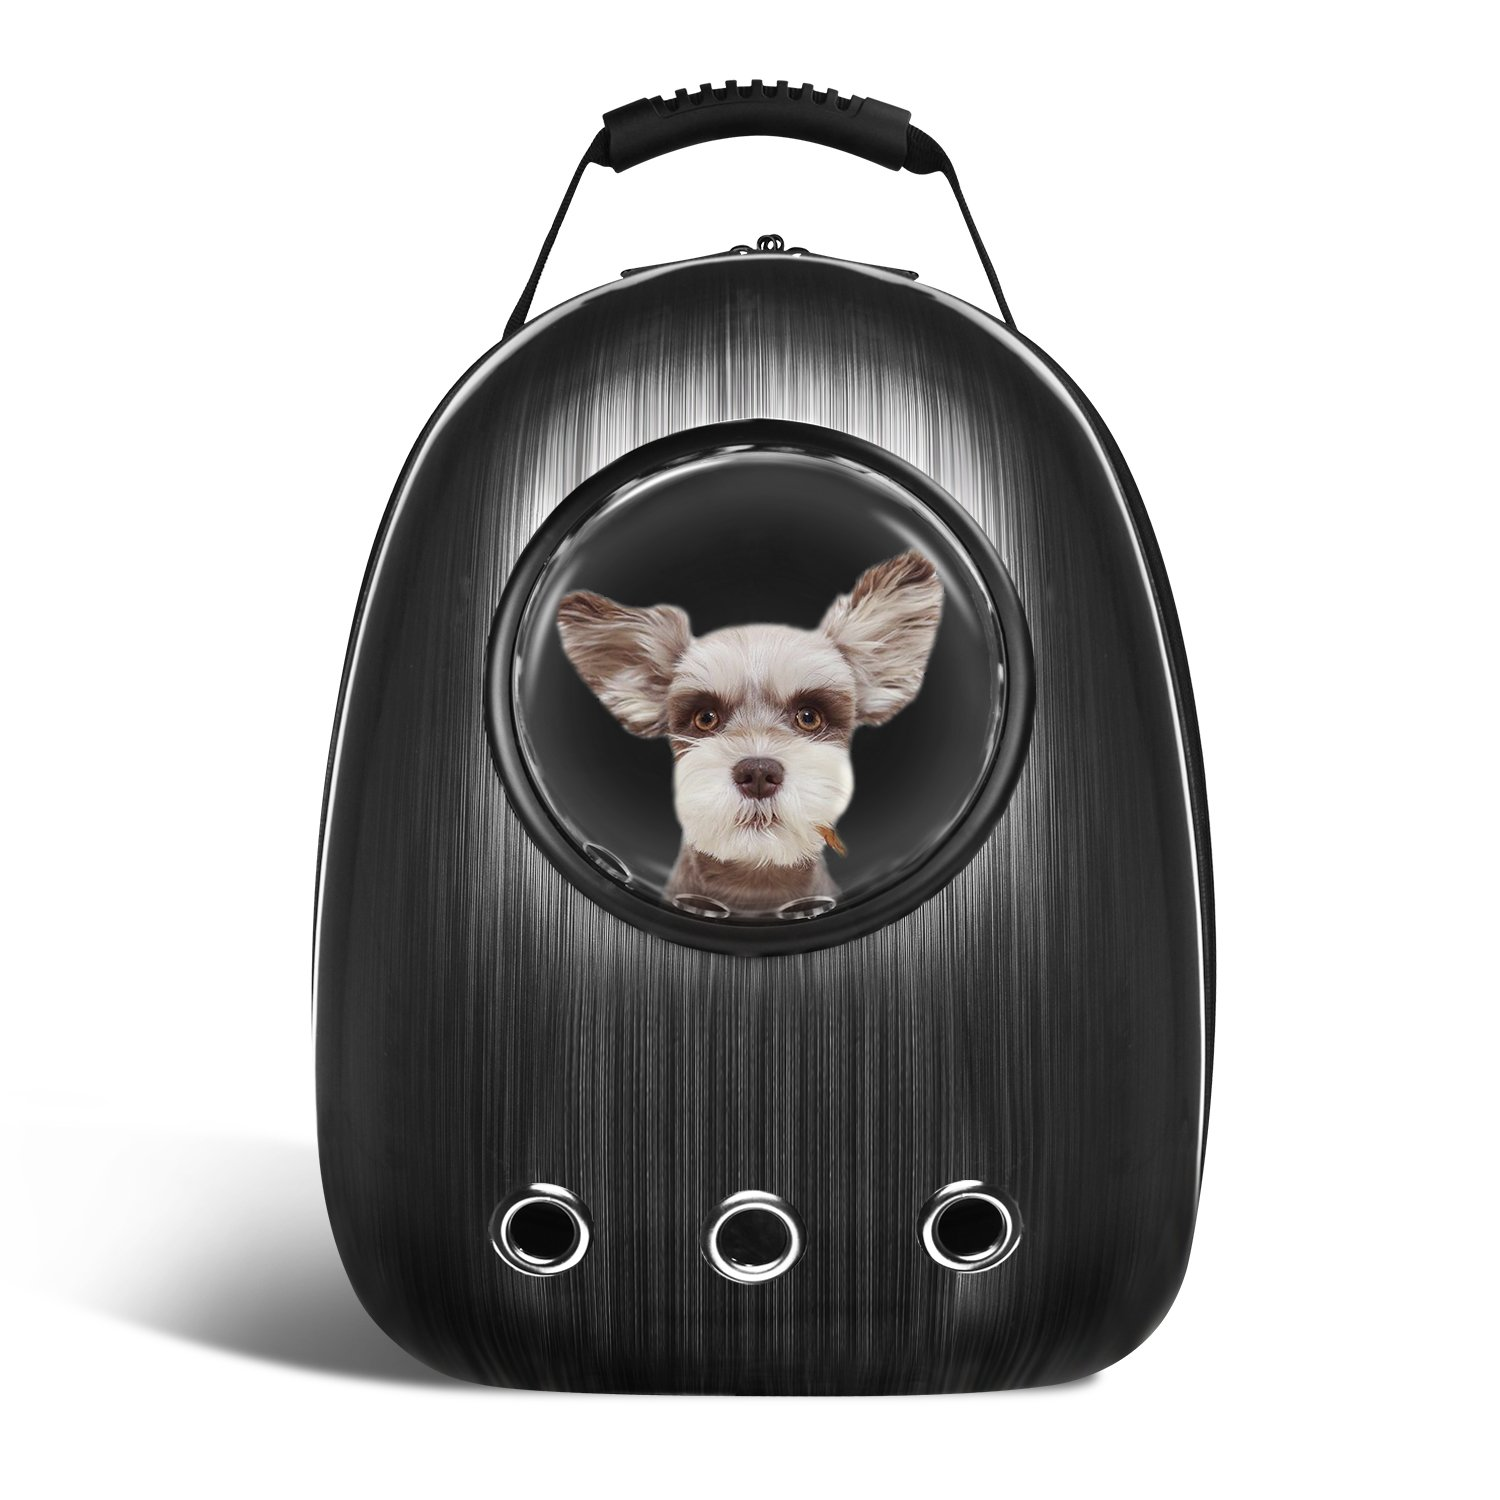 38dc13b7f6a Blitzwolf Pet Portable Carrier Space Capsule Backpack, Pet Bubble Traveler  Knapsack Multiple Air Vents Waterproof Lightweight Handbag for Cats Small  Dogs ...